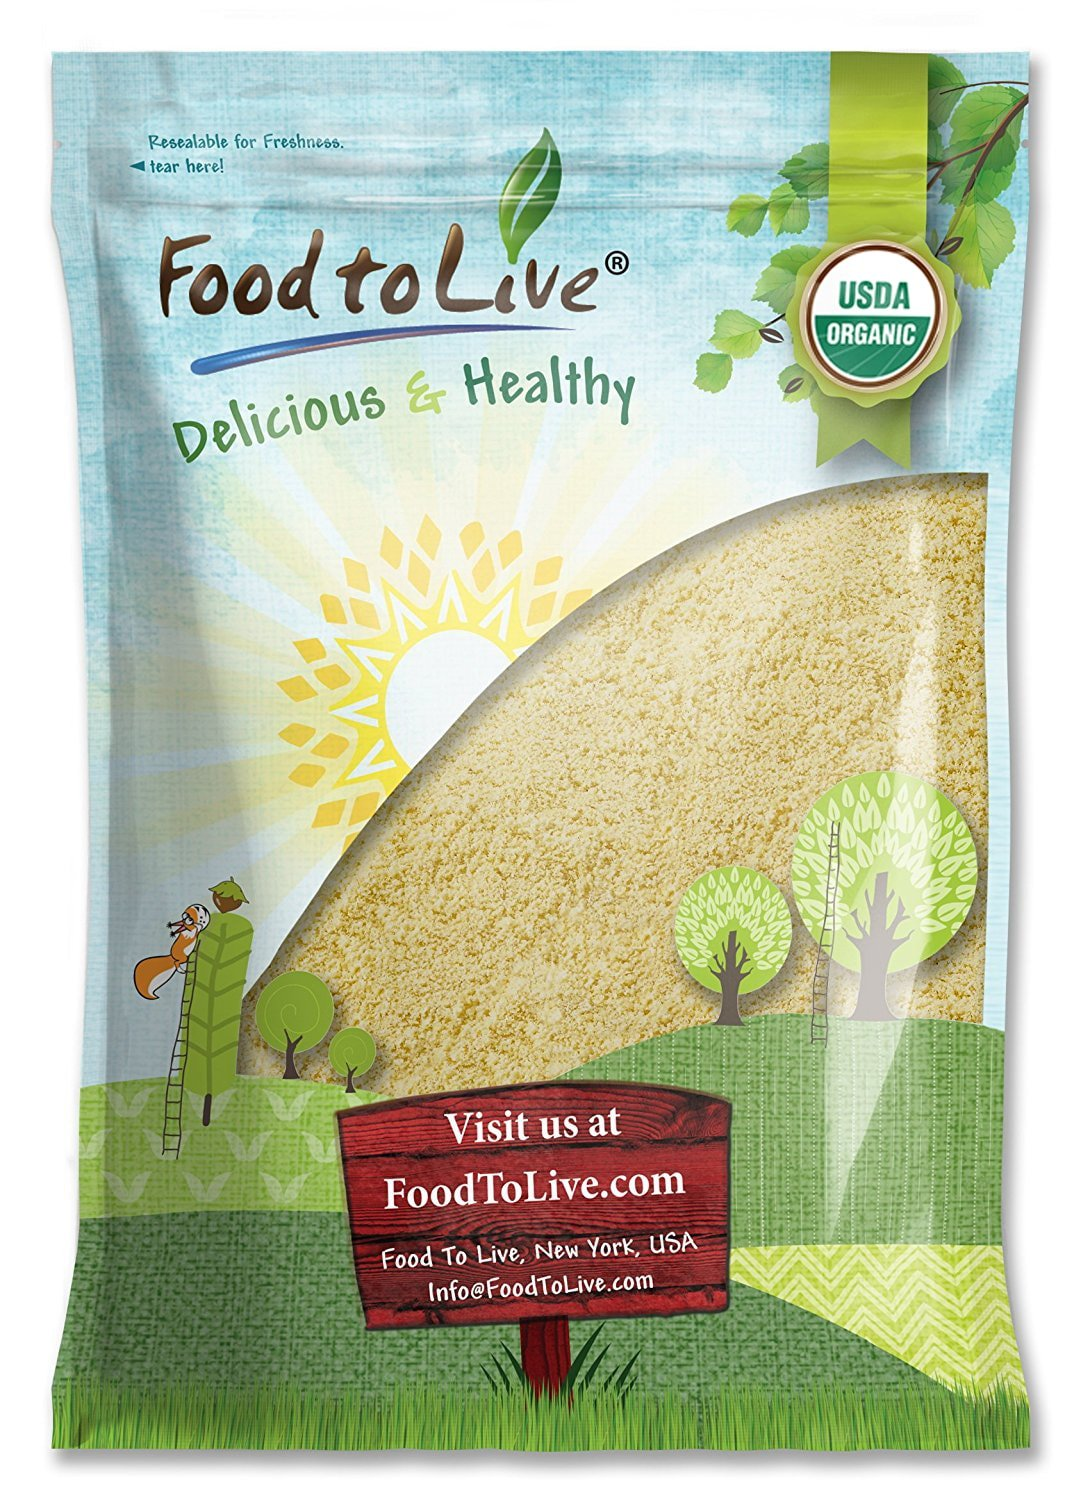 Organic Almond Flour, 8 Pounds - Extra Fine Blanched Prime Meal, Non-GMO, Low Carb, Culinary Grade, Kosher, Keto, Paleo and Vegan Super Powder, Bulk, Product of California by Food to Live